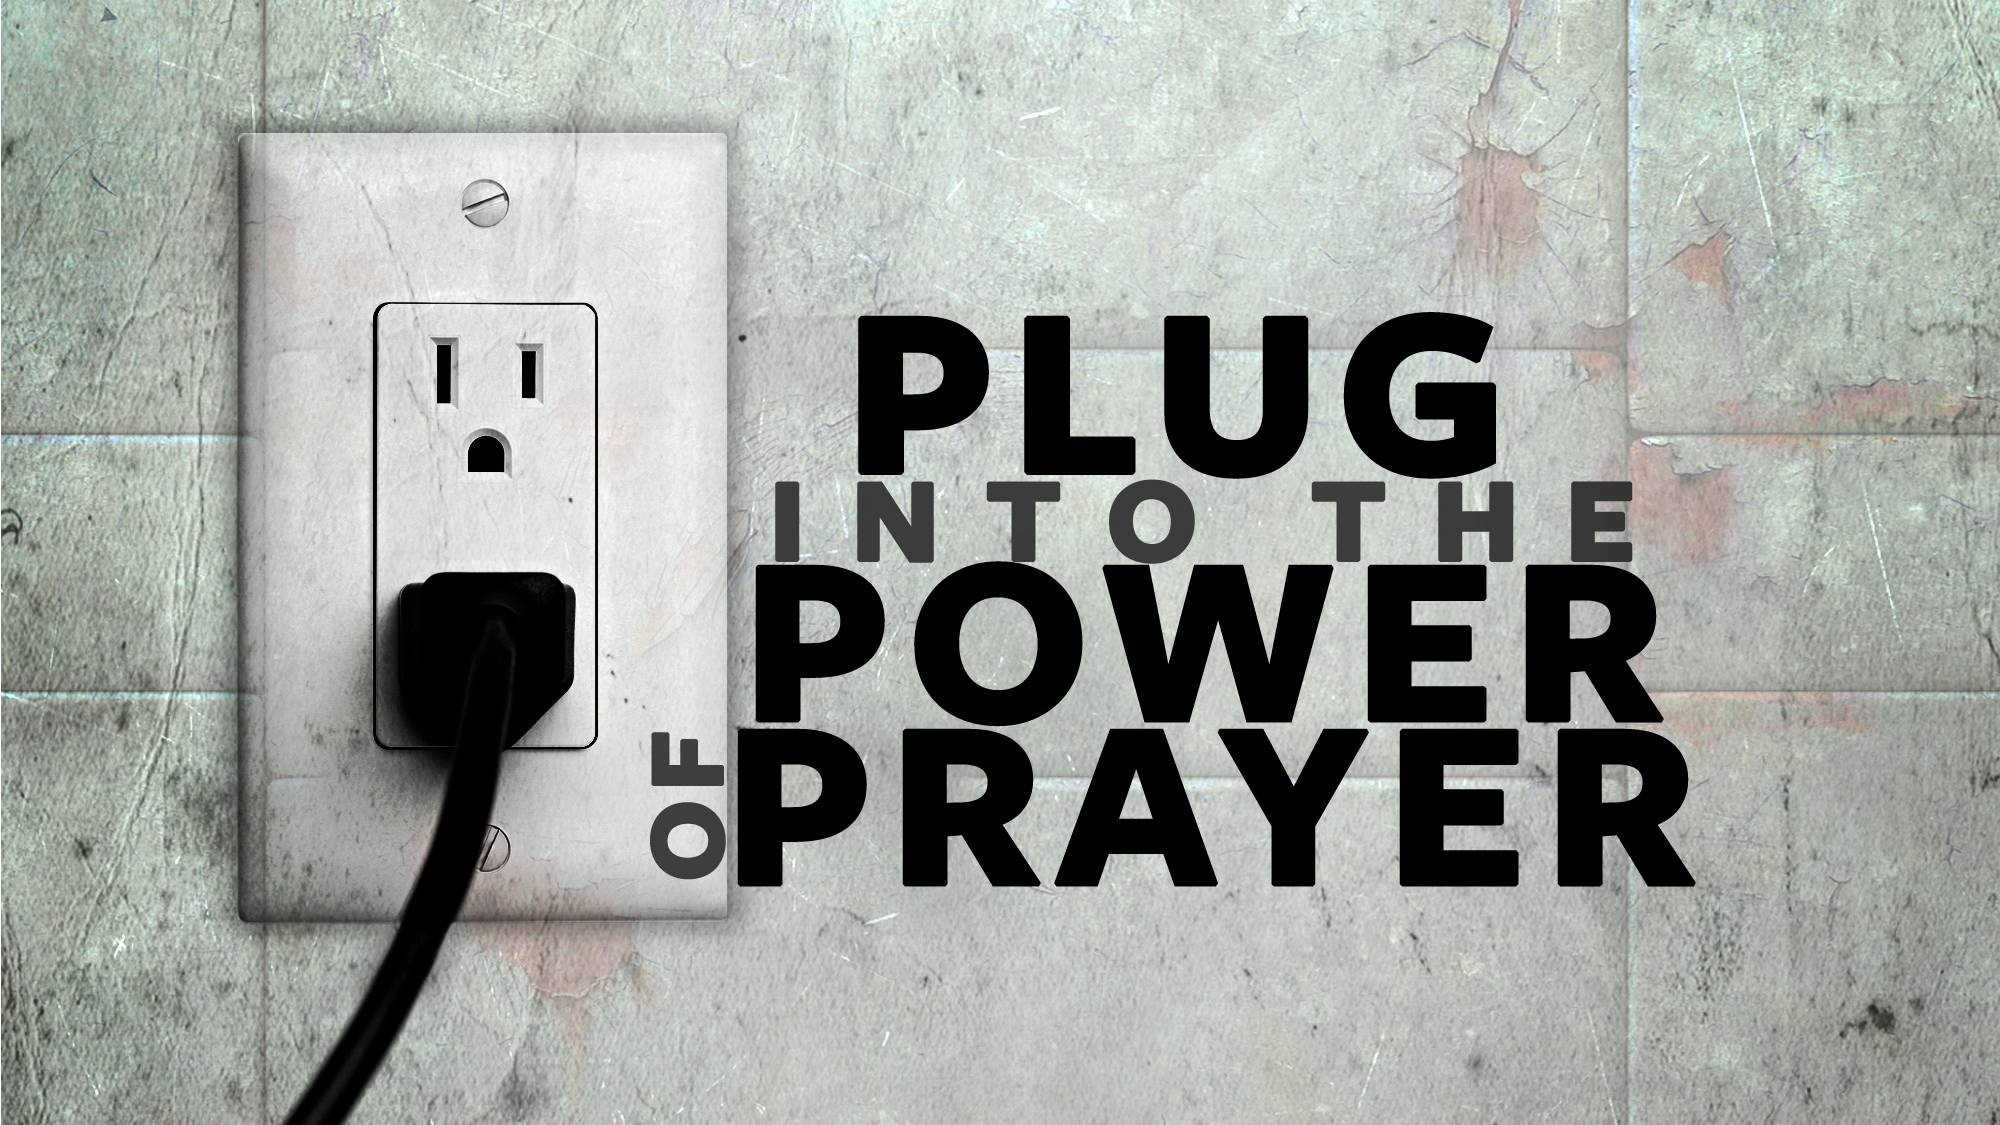 http://kechiumc.org/hp_wordpress/wp-content/uploads/2014/01/Plug-into-Prayer.jpg